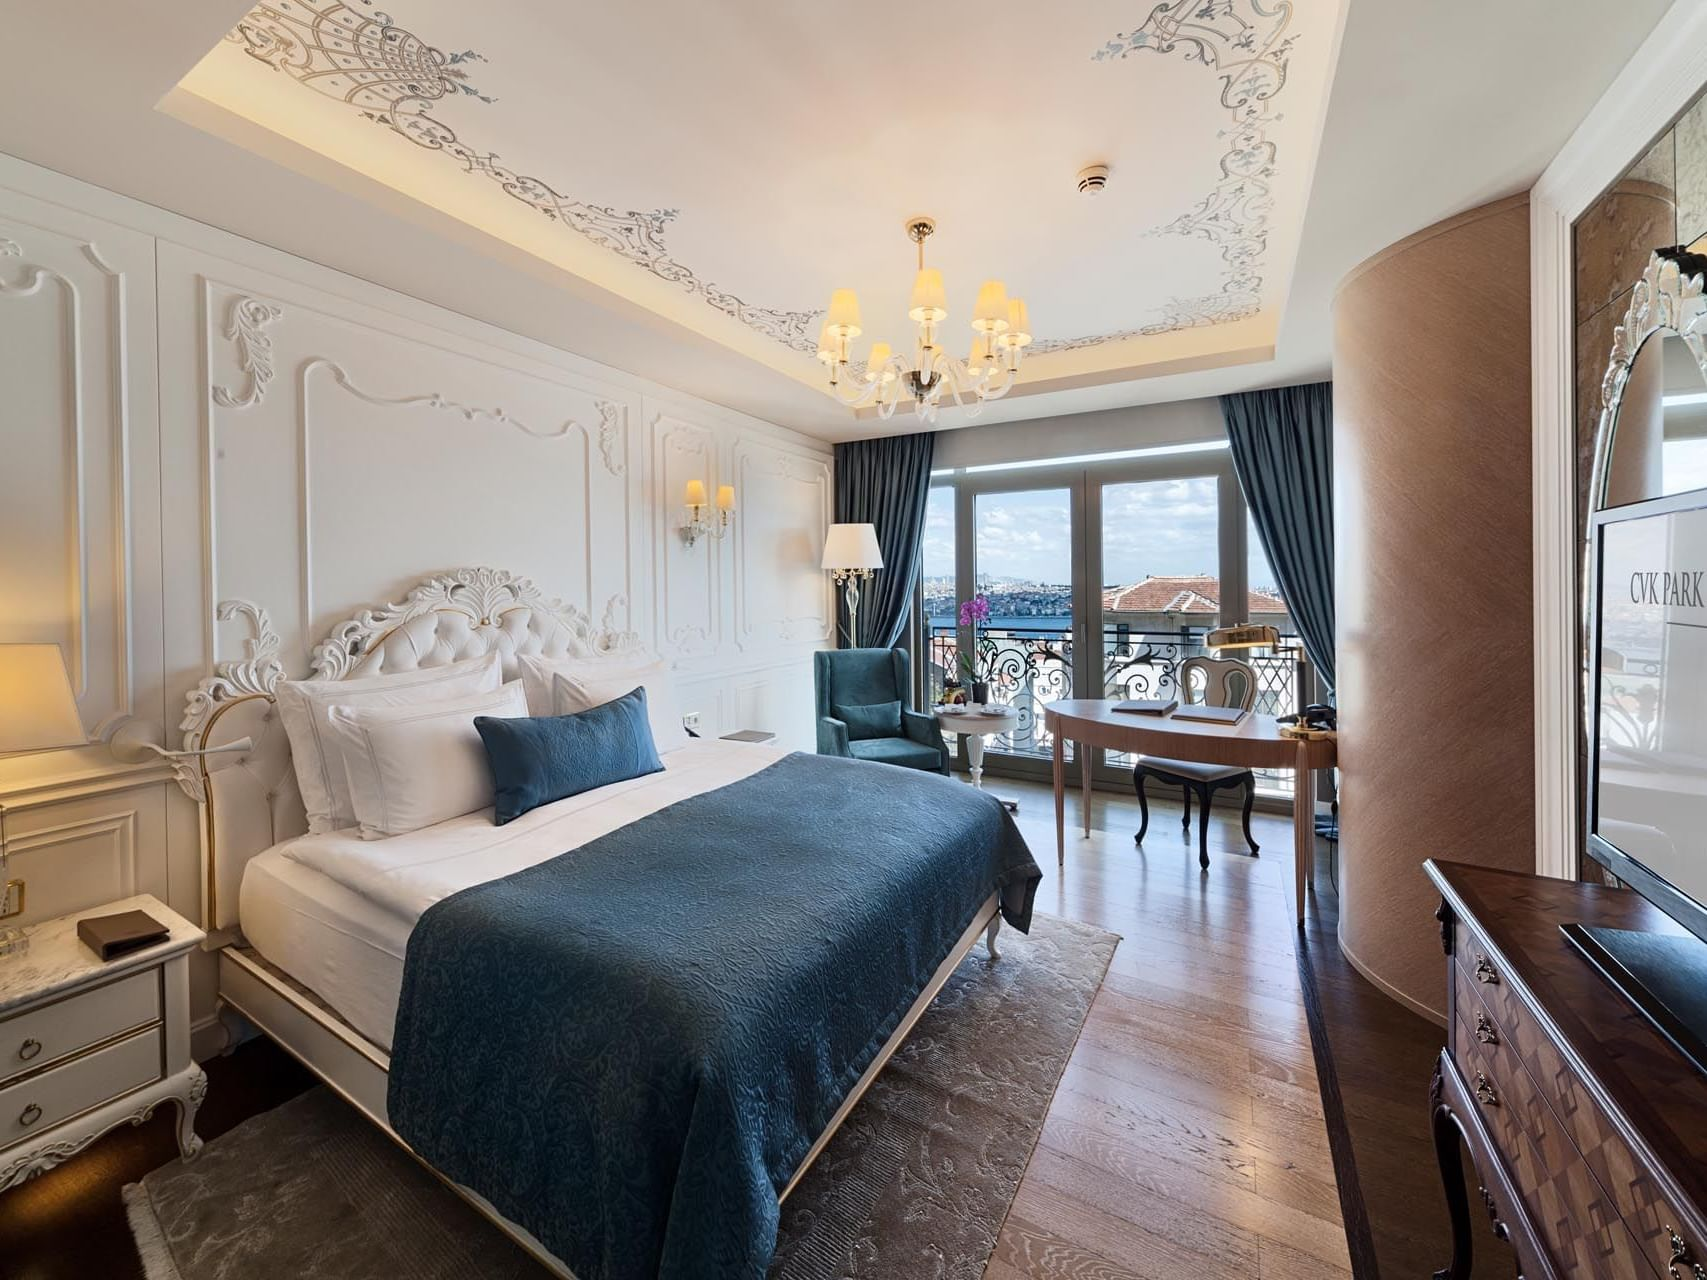 Superior Room with one bed at CVK Park Bosphorus Hotel Istanbul